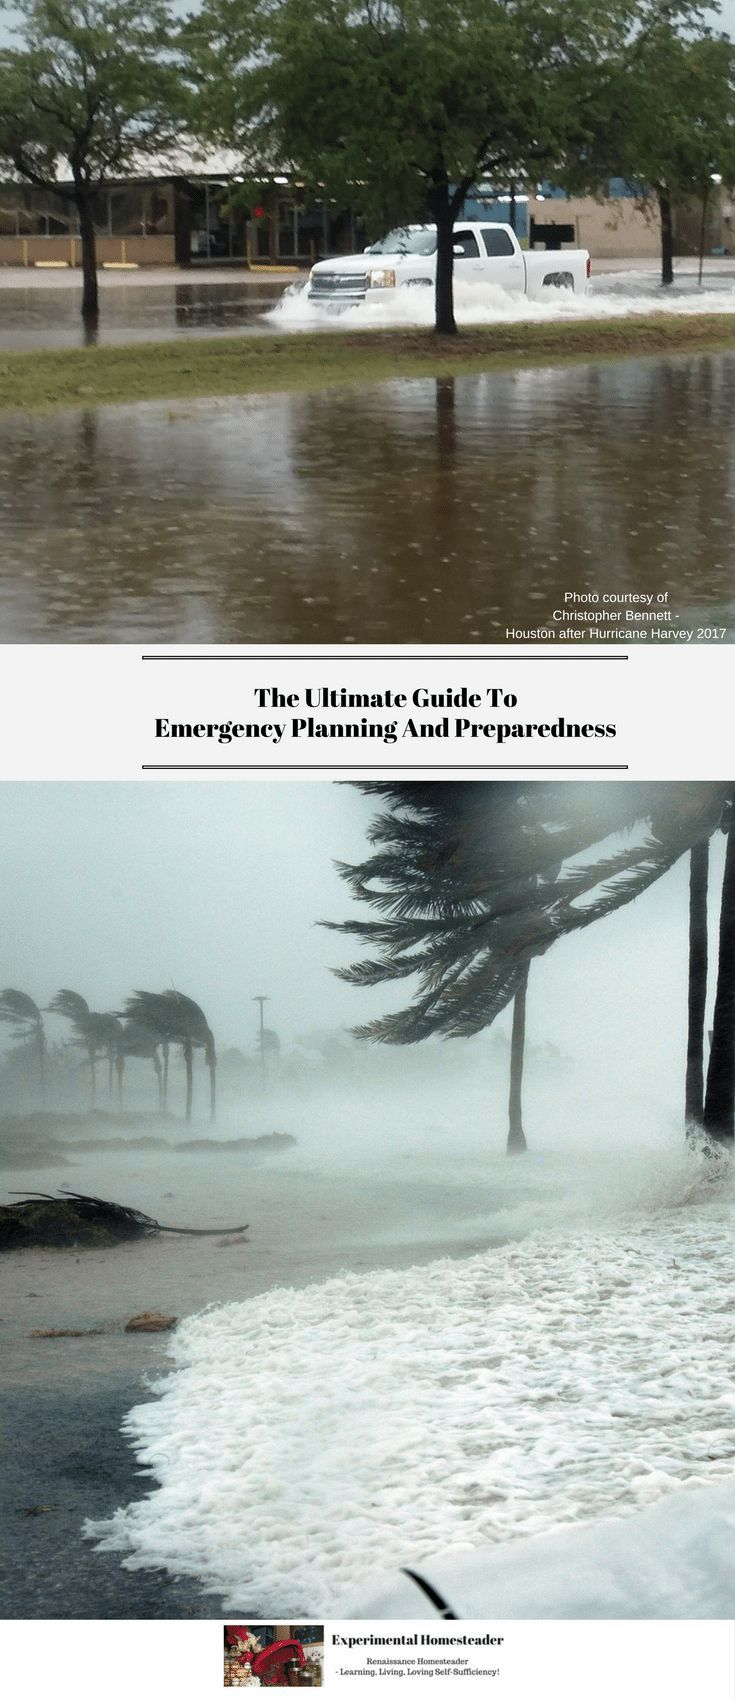 Do you have a disaster preparedness and response plan in place? Check out the ultimate guide to emergency planning and preparedness! #disasterpreparednessandresponseplan #emergencyplanningandpreparedness #emergencypreparedness #emergencyreadinessplan